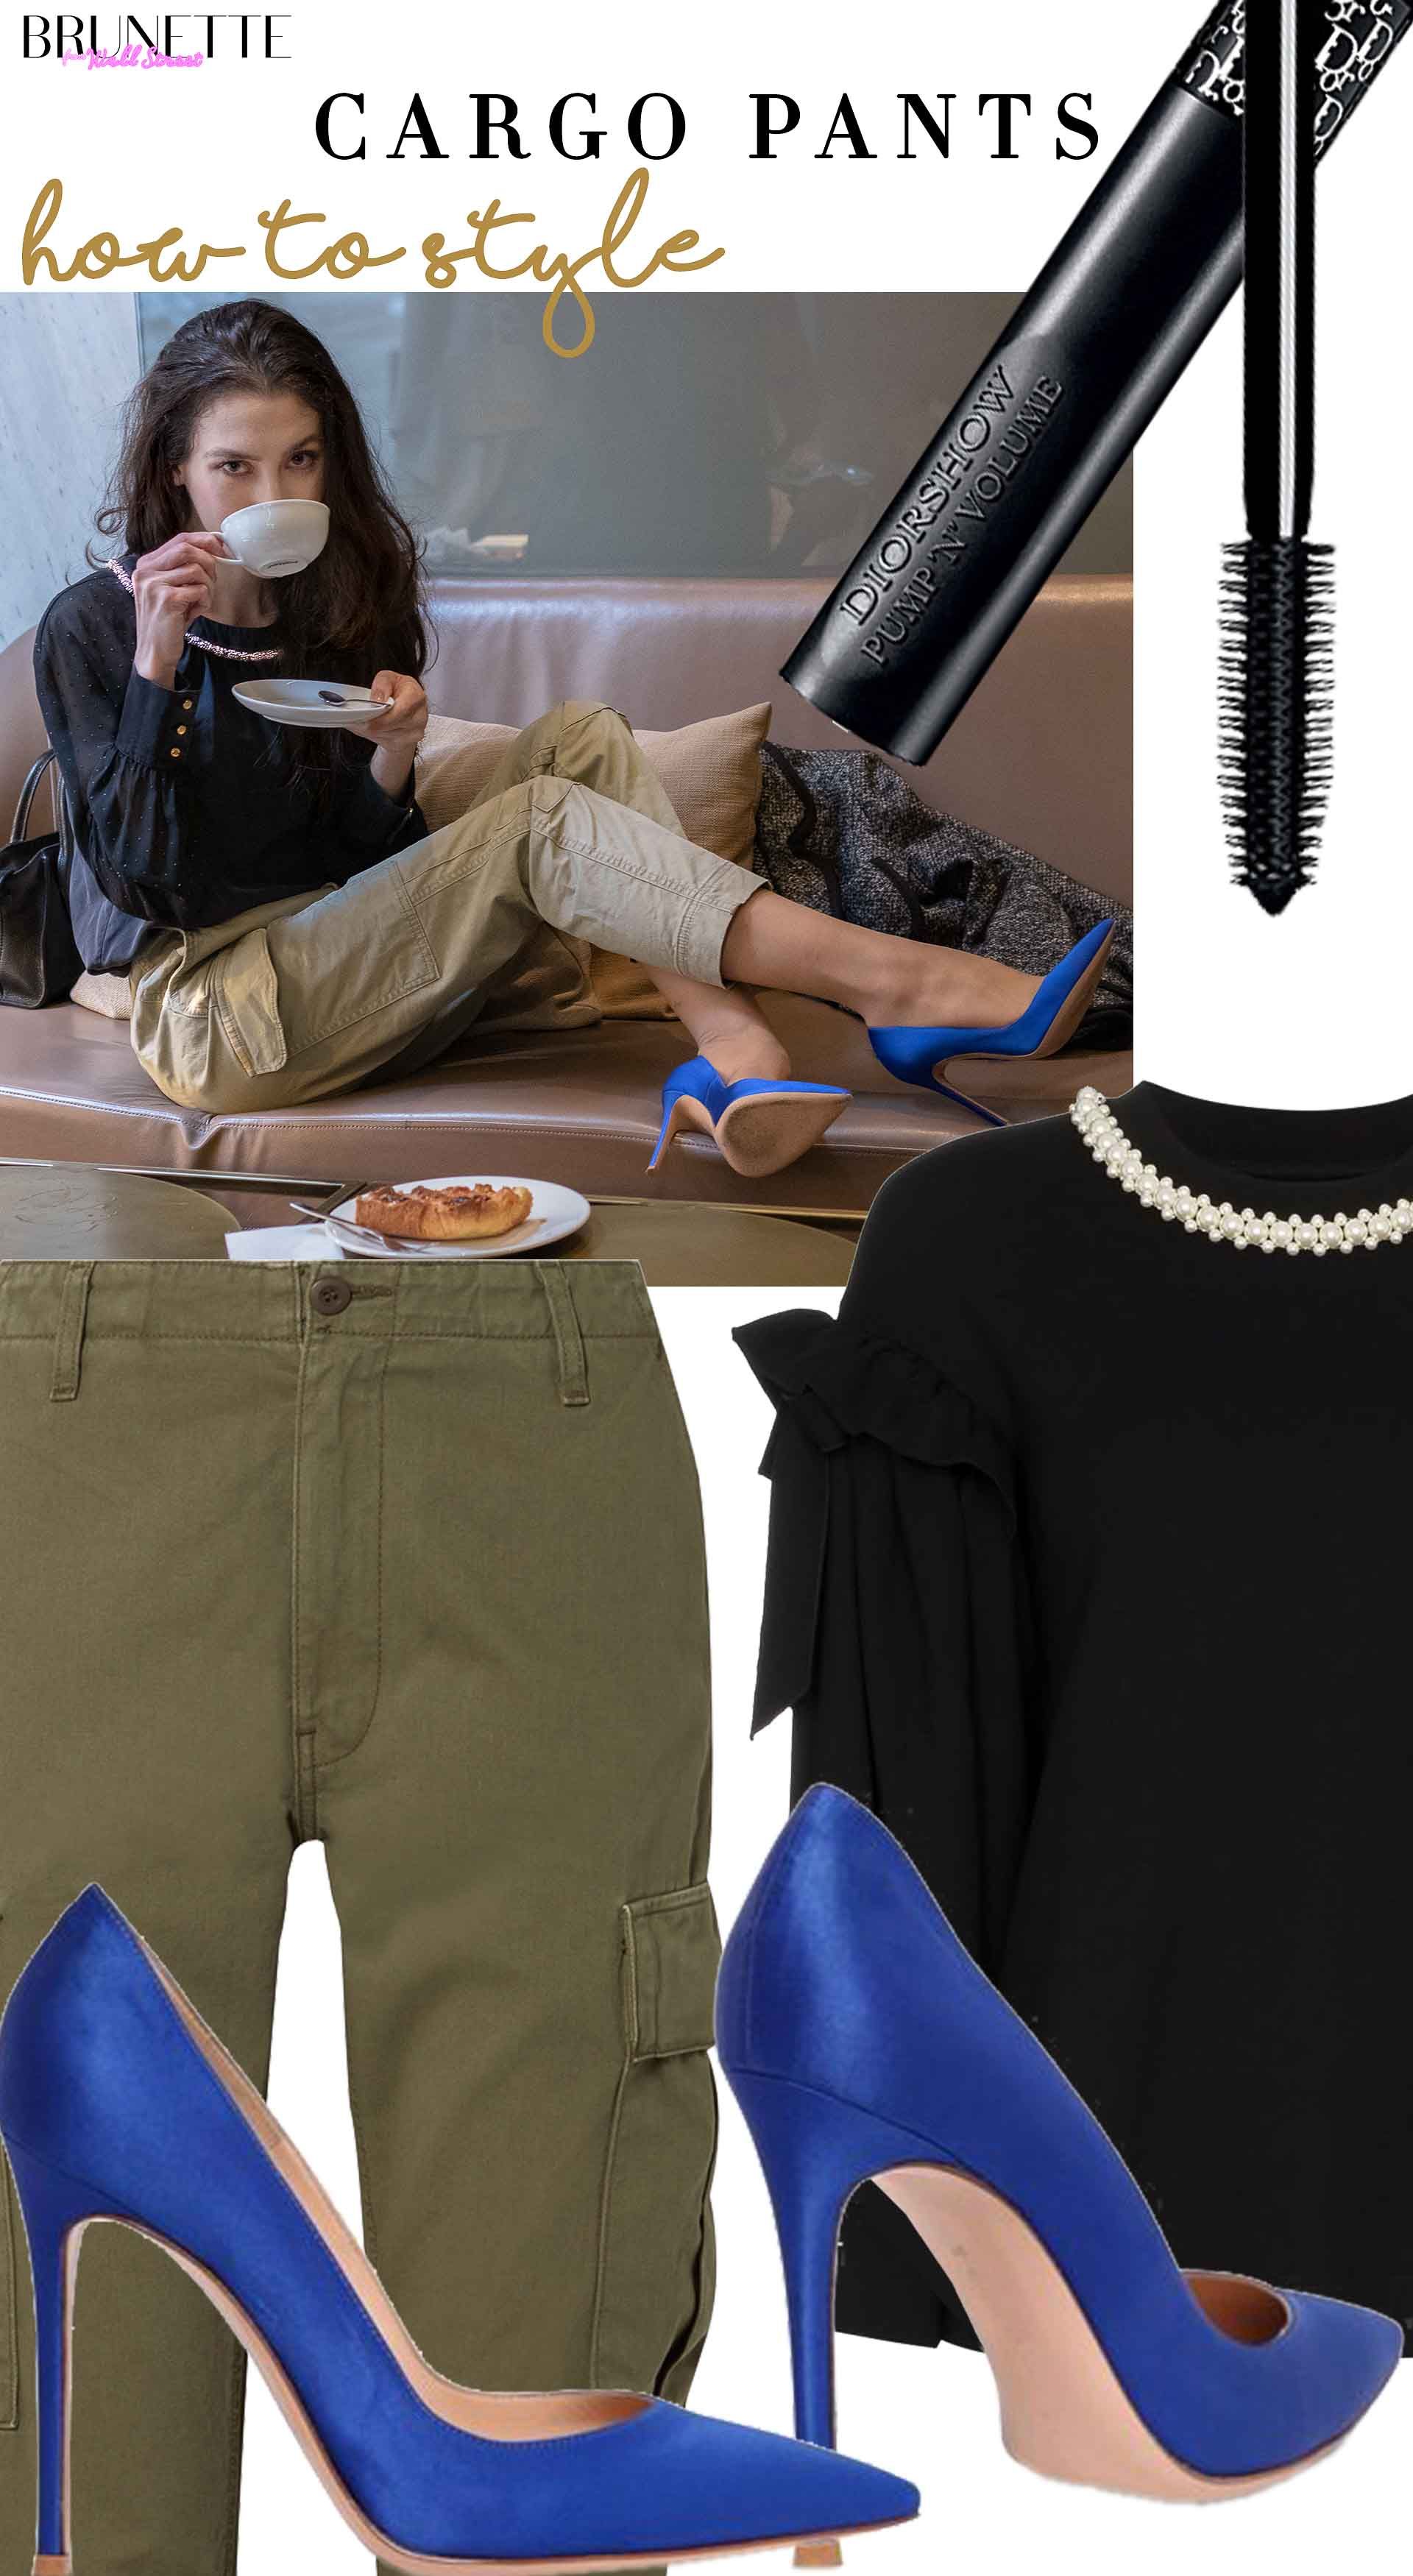 chic winter brunch date outfit cargo pants with blue pumps black blouse dior mascara